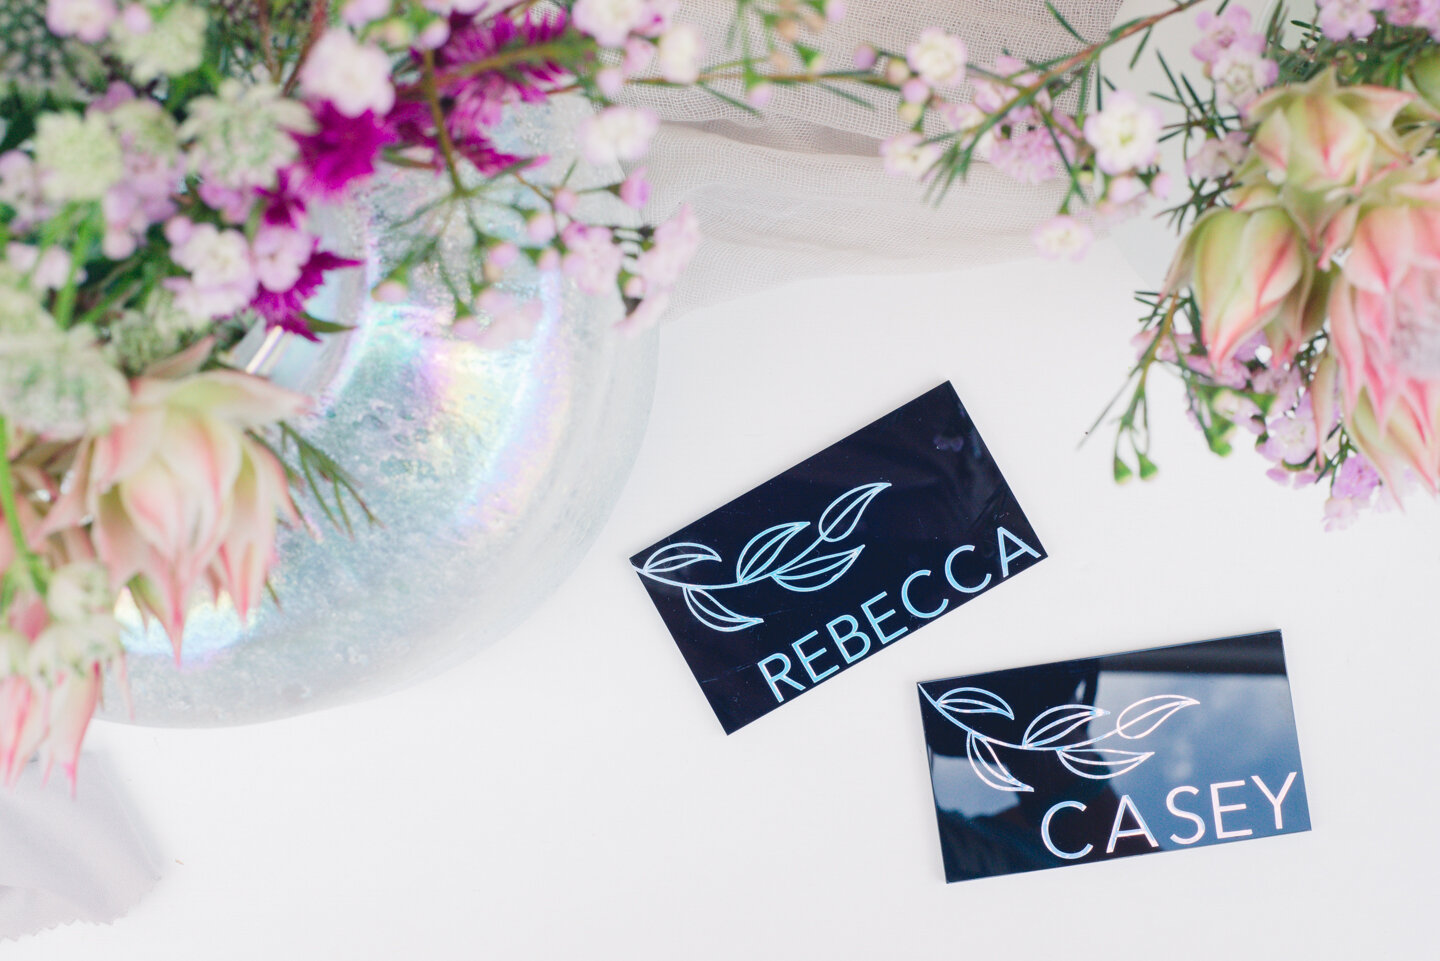 Black acrylic place cards with holographic vinyl and floral elements.